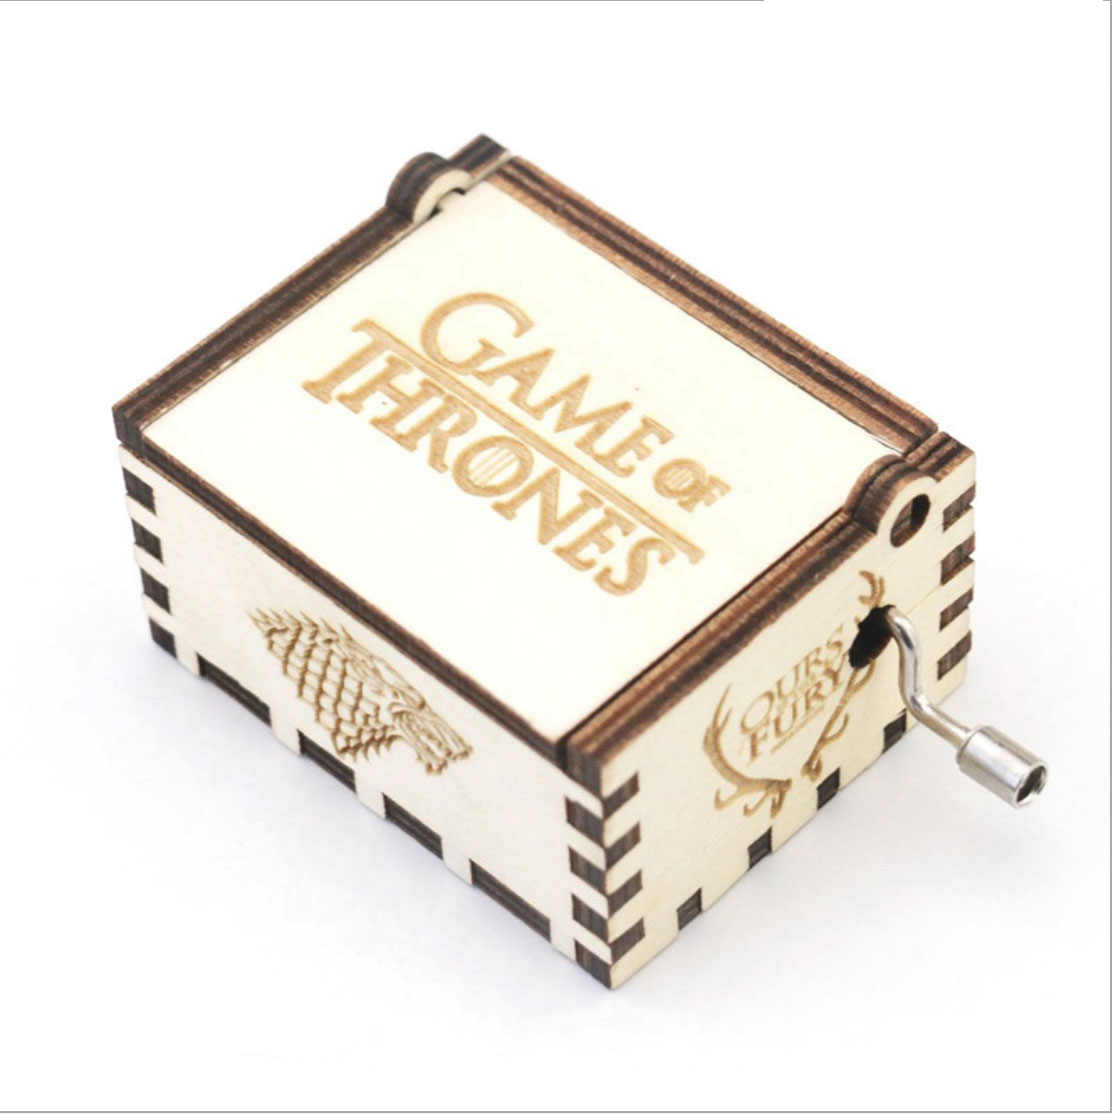 Game of Thrones Harri Potter Music Box Wooden Hand Crank Music Box Diy Christmas Gift Birthday Gift Party Casket White Box Gifts